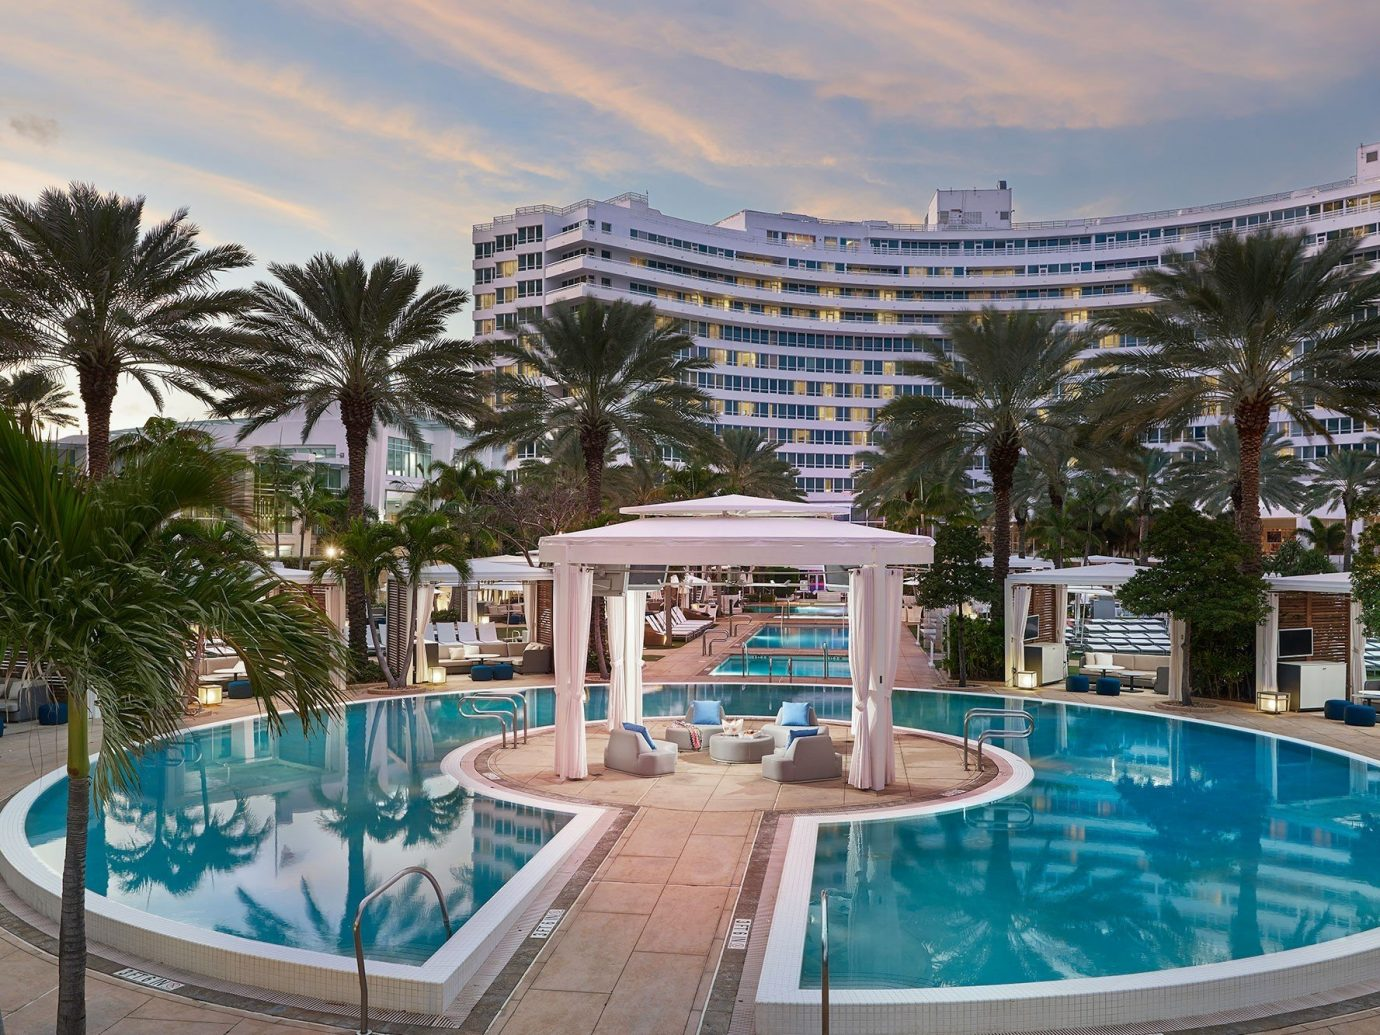 City Hotels Luxury Miami Beach Outdoor Resort Building Swimming Pool Property Palm Tree Water